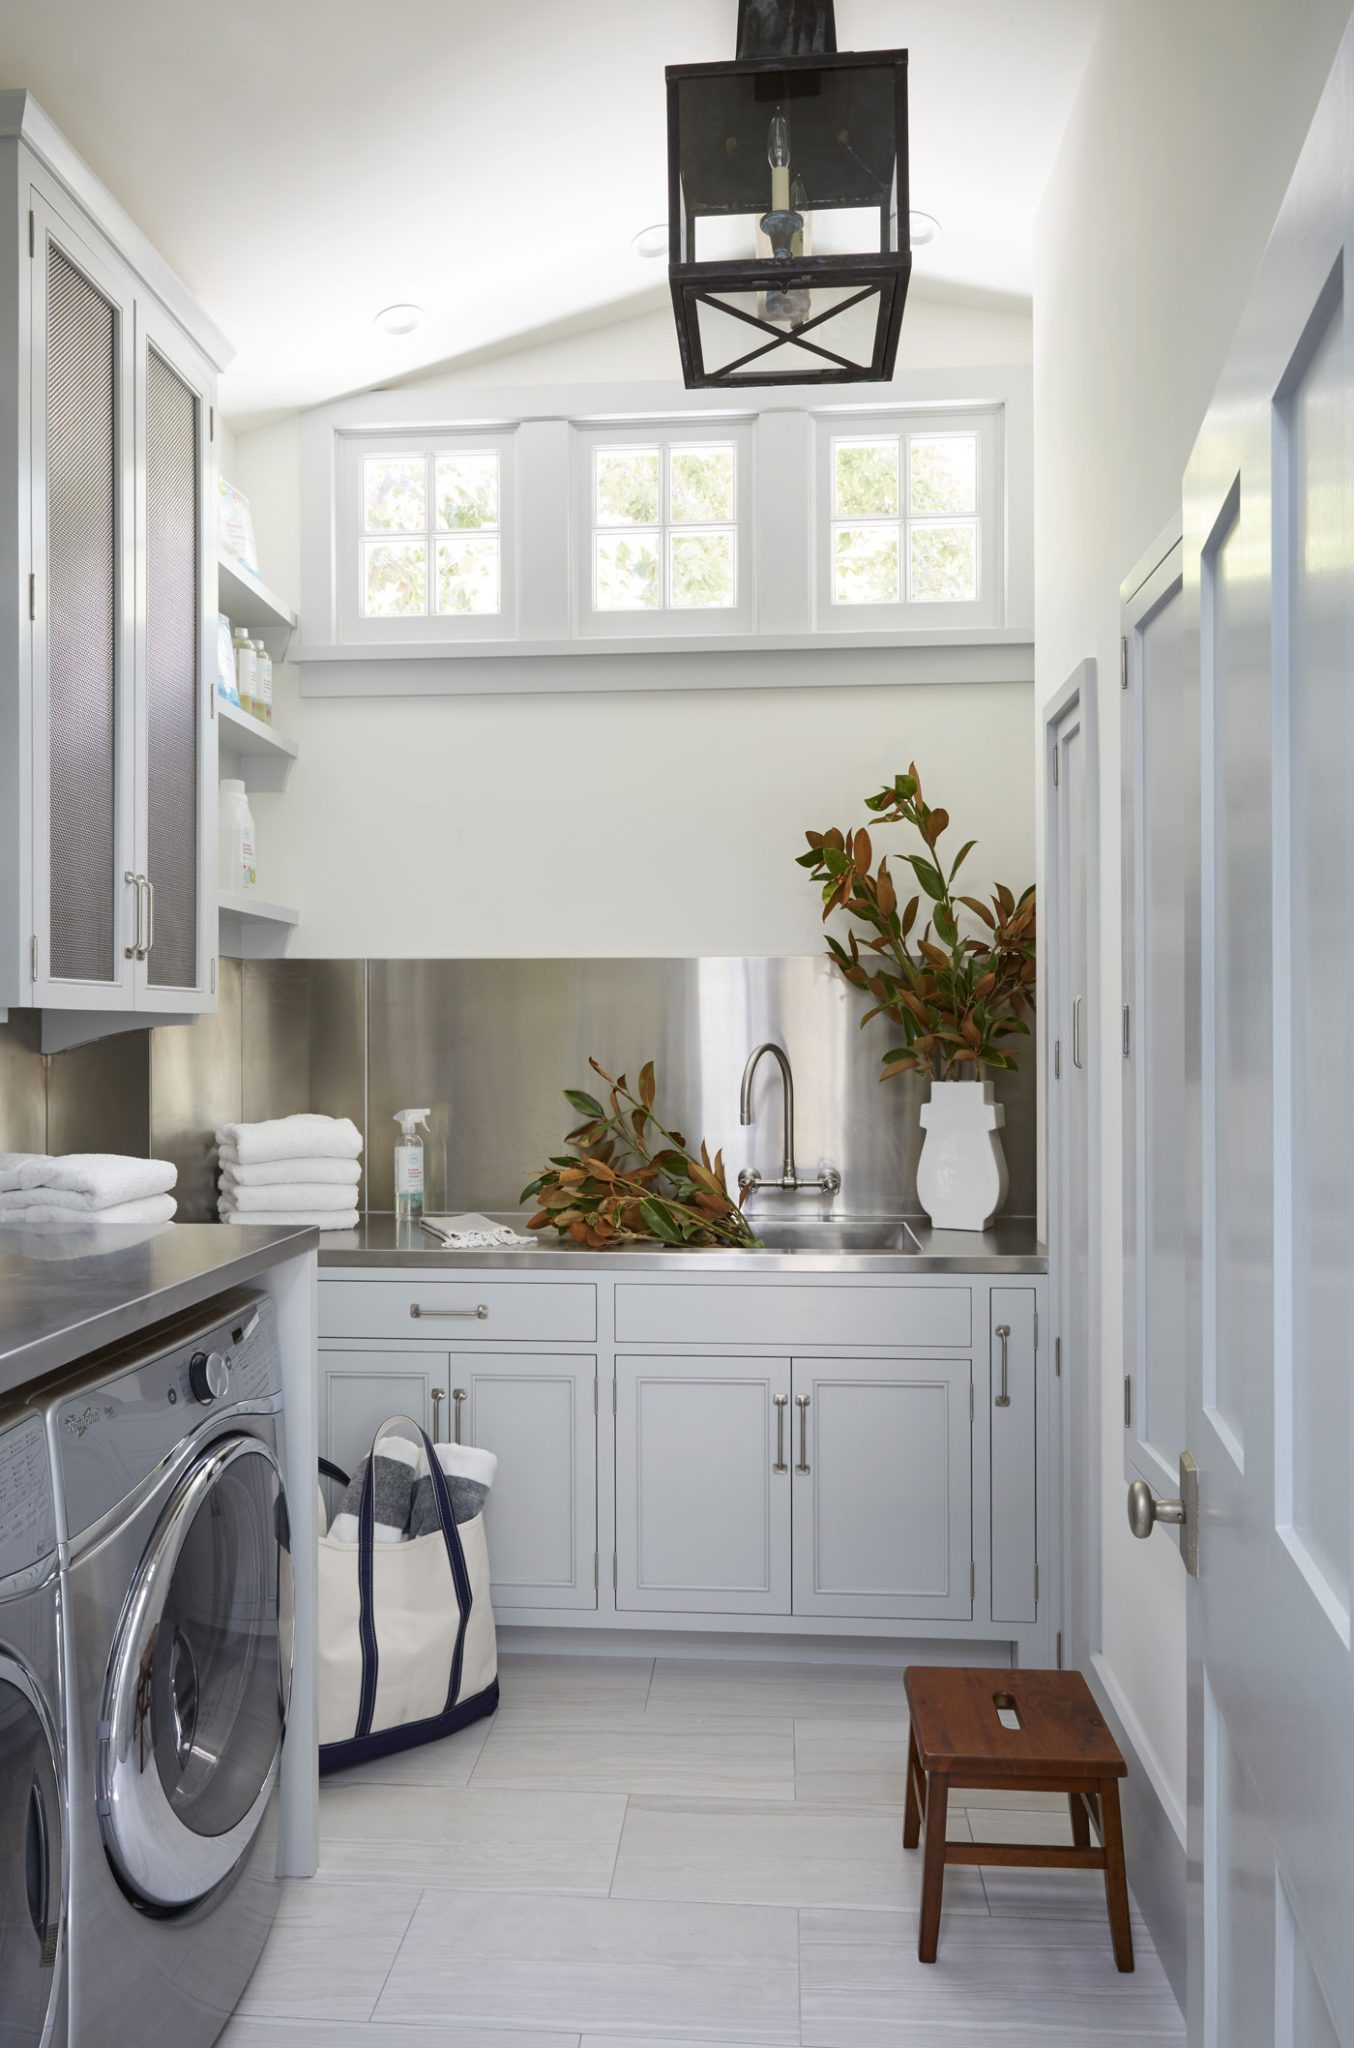 Laundry Room in a Ranch House Renovation by Tim Barber Ltd.